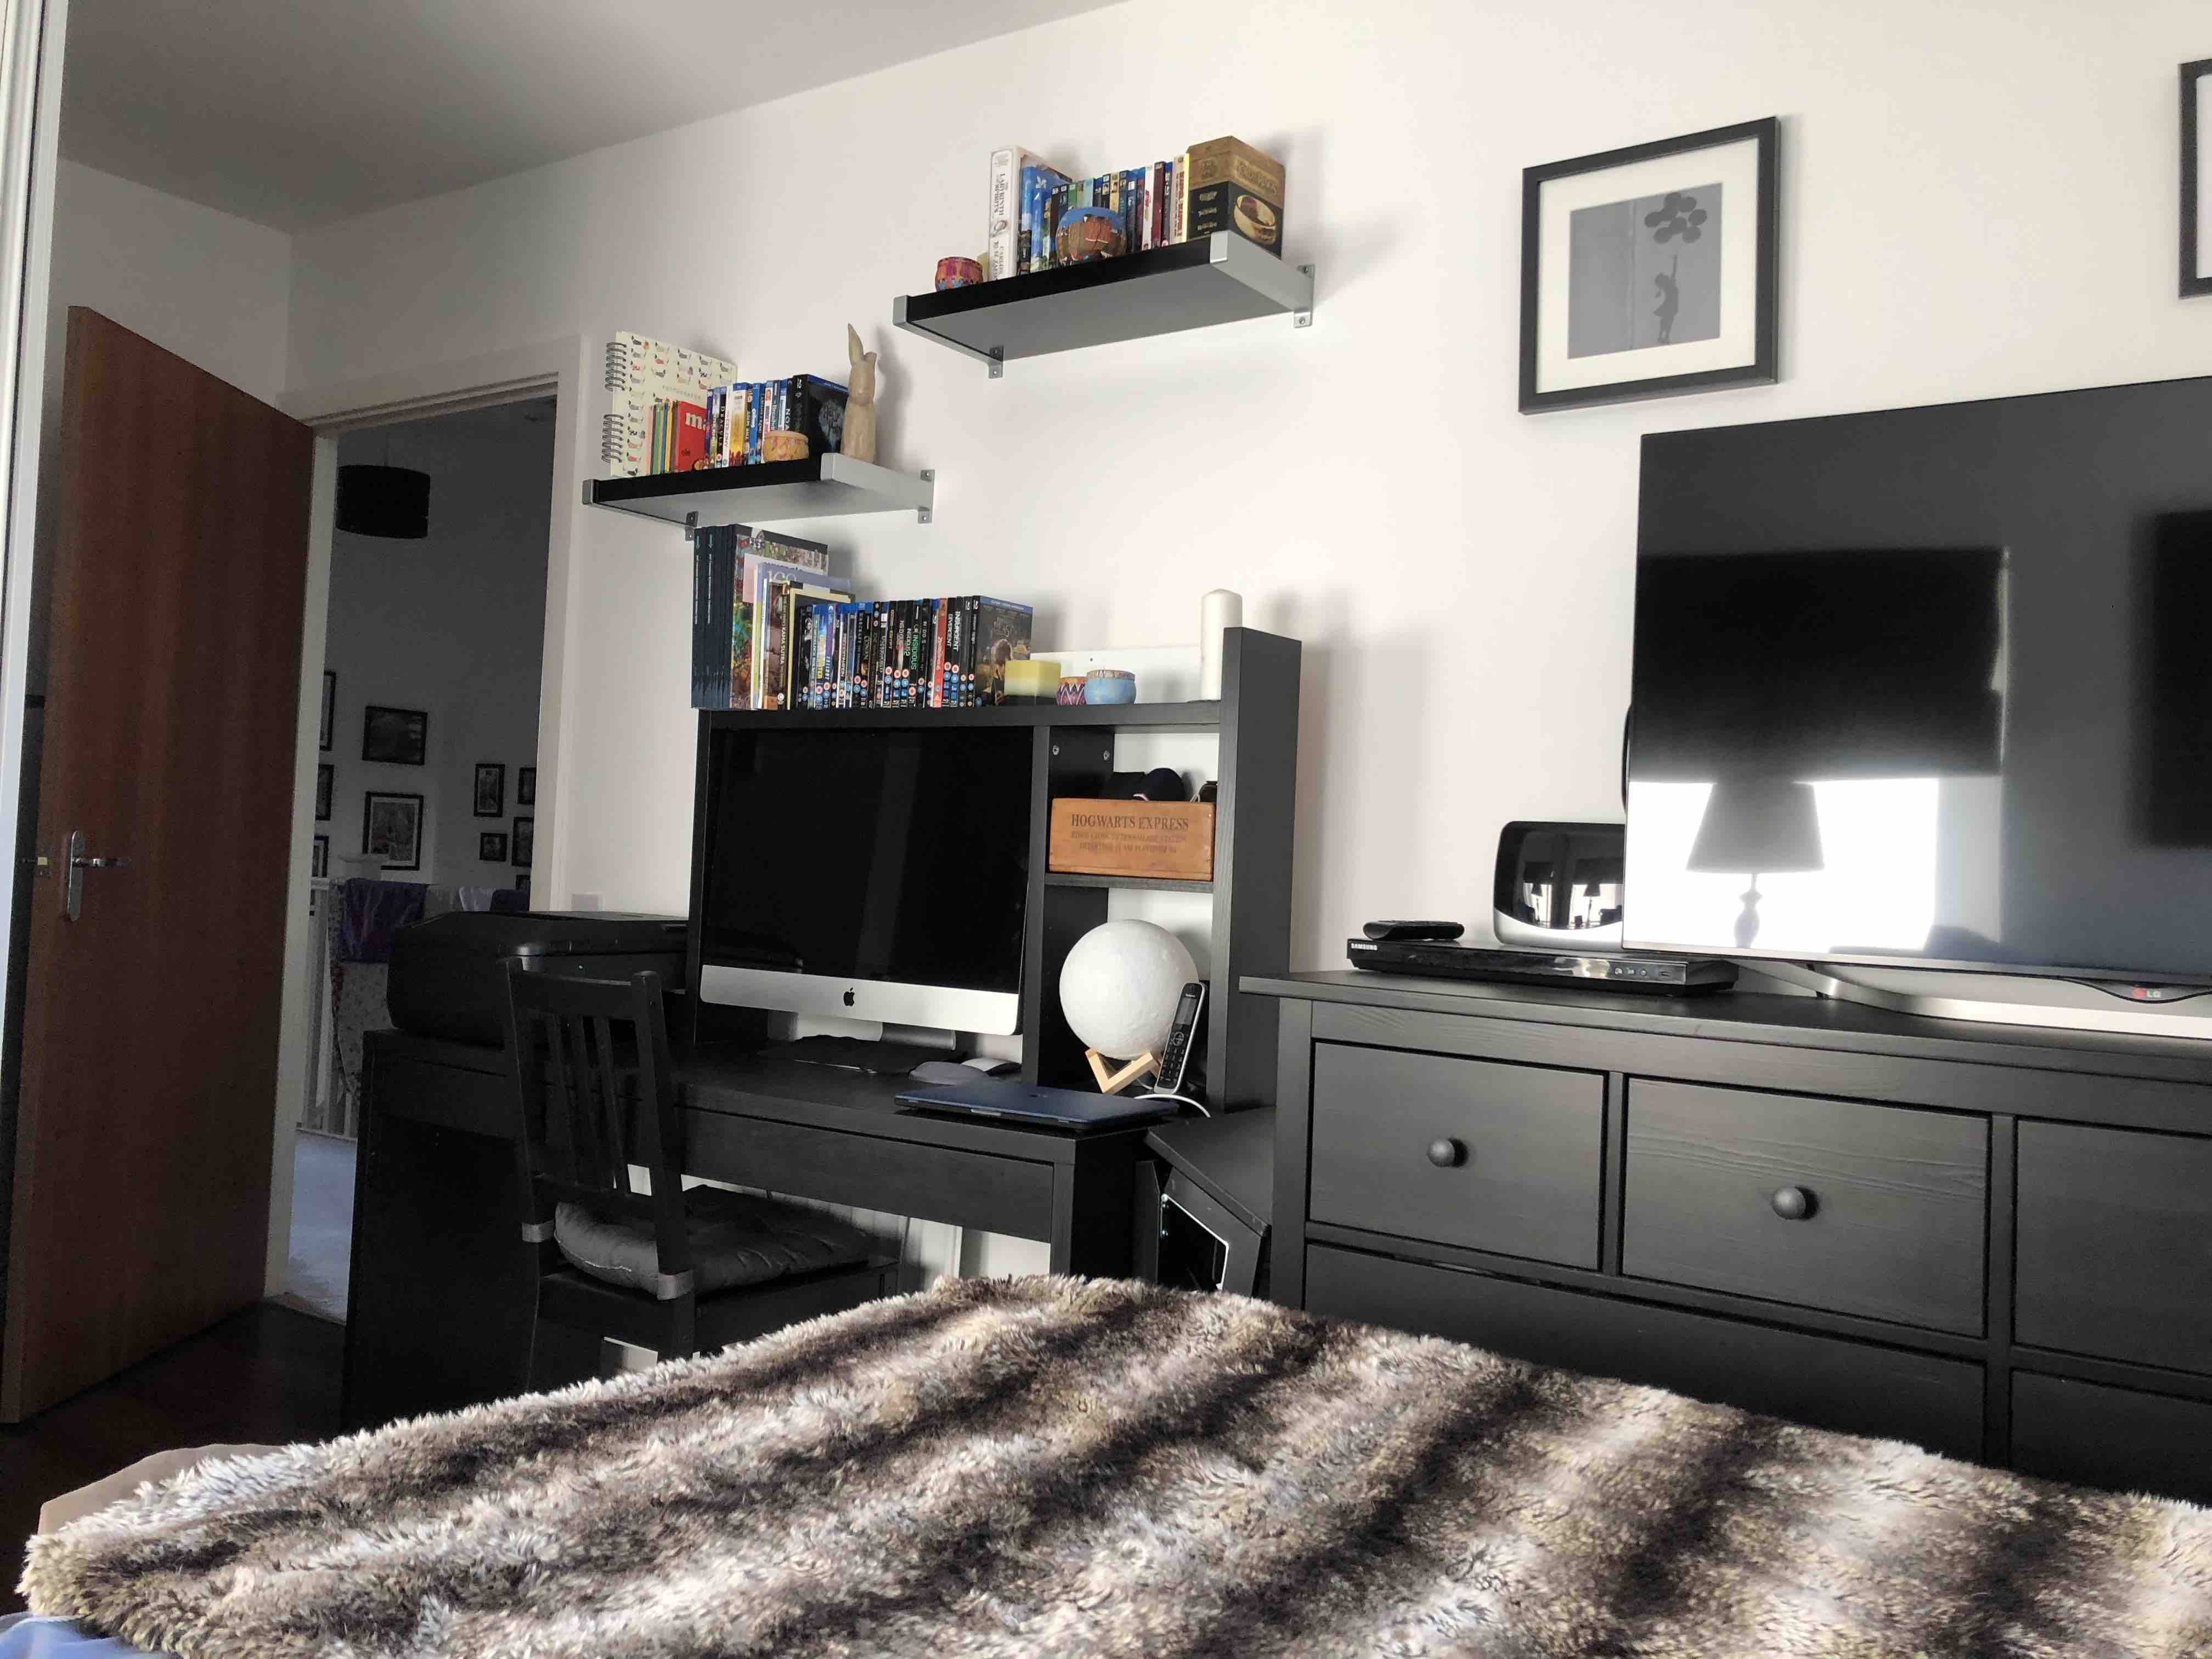 1 room in Thames, London, IG110FB RoomsLocal image